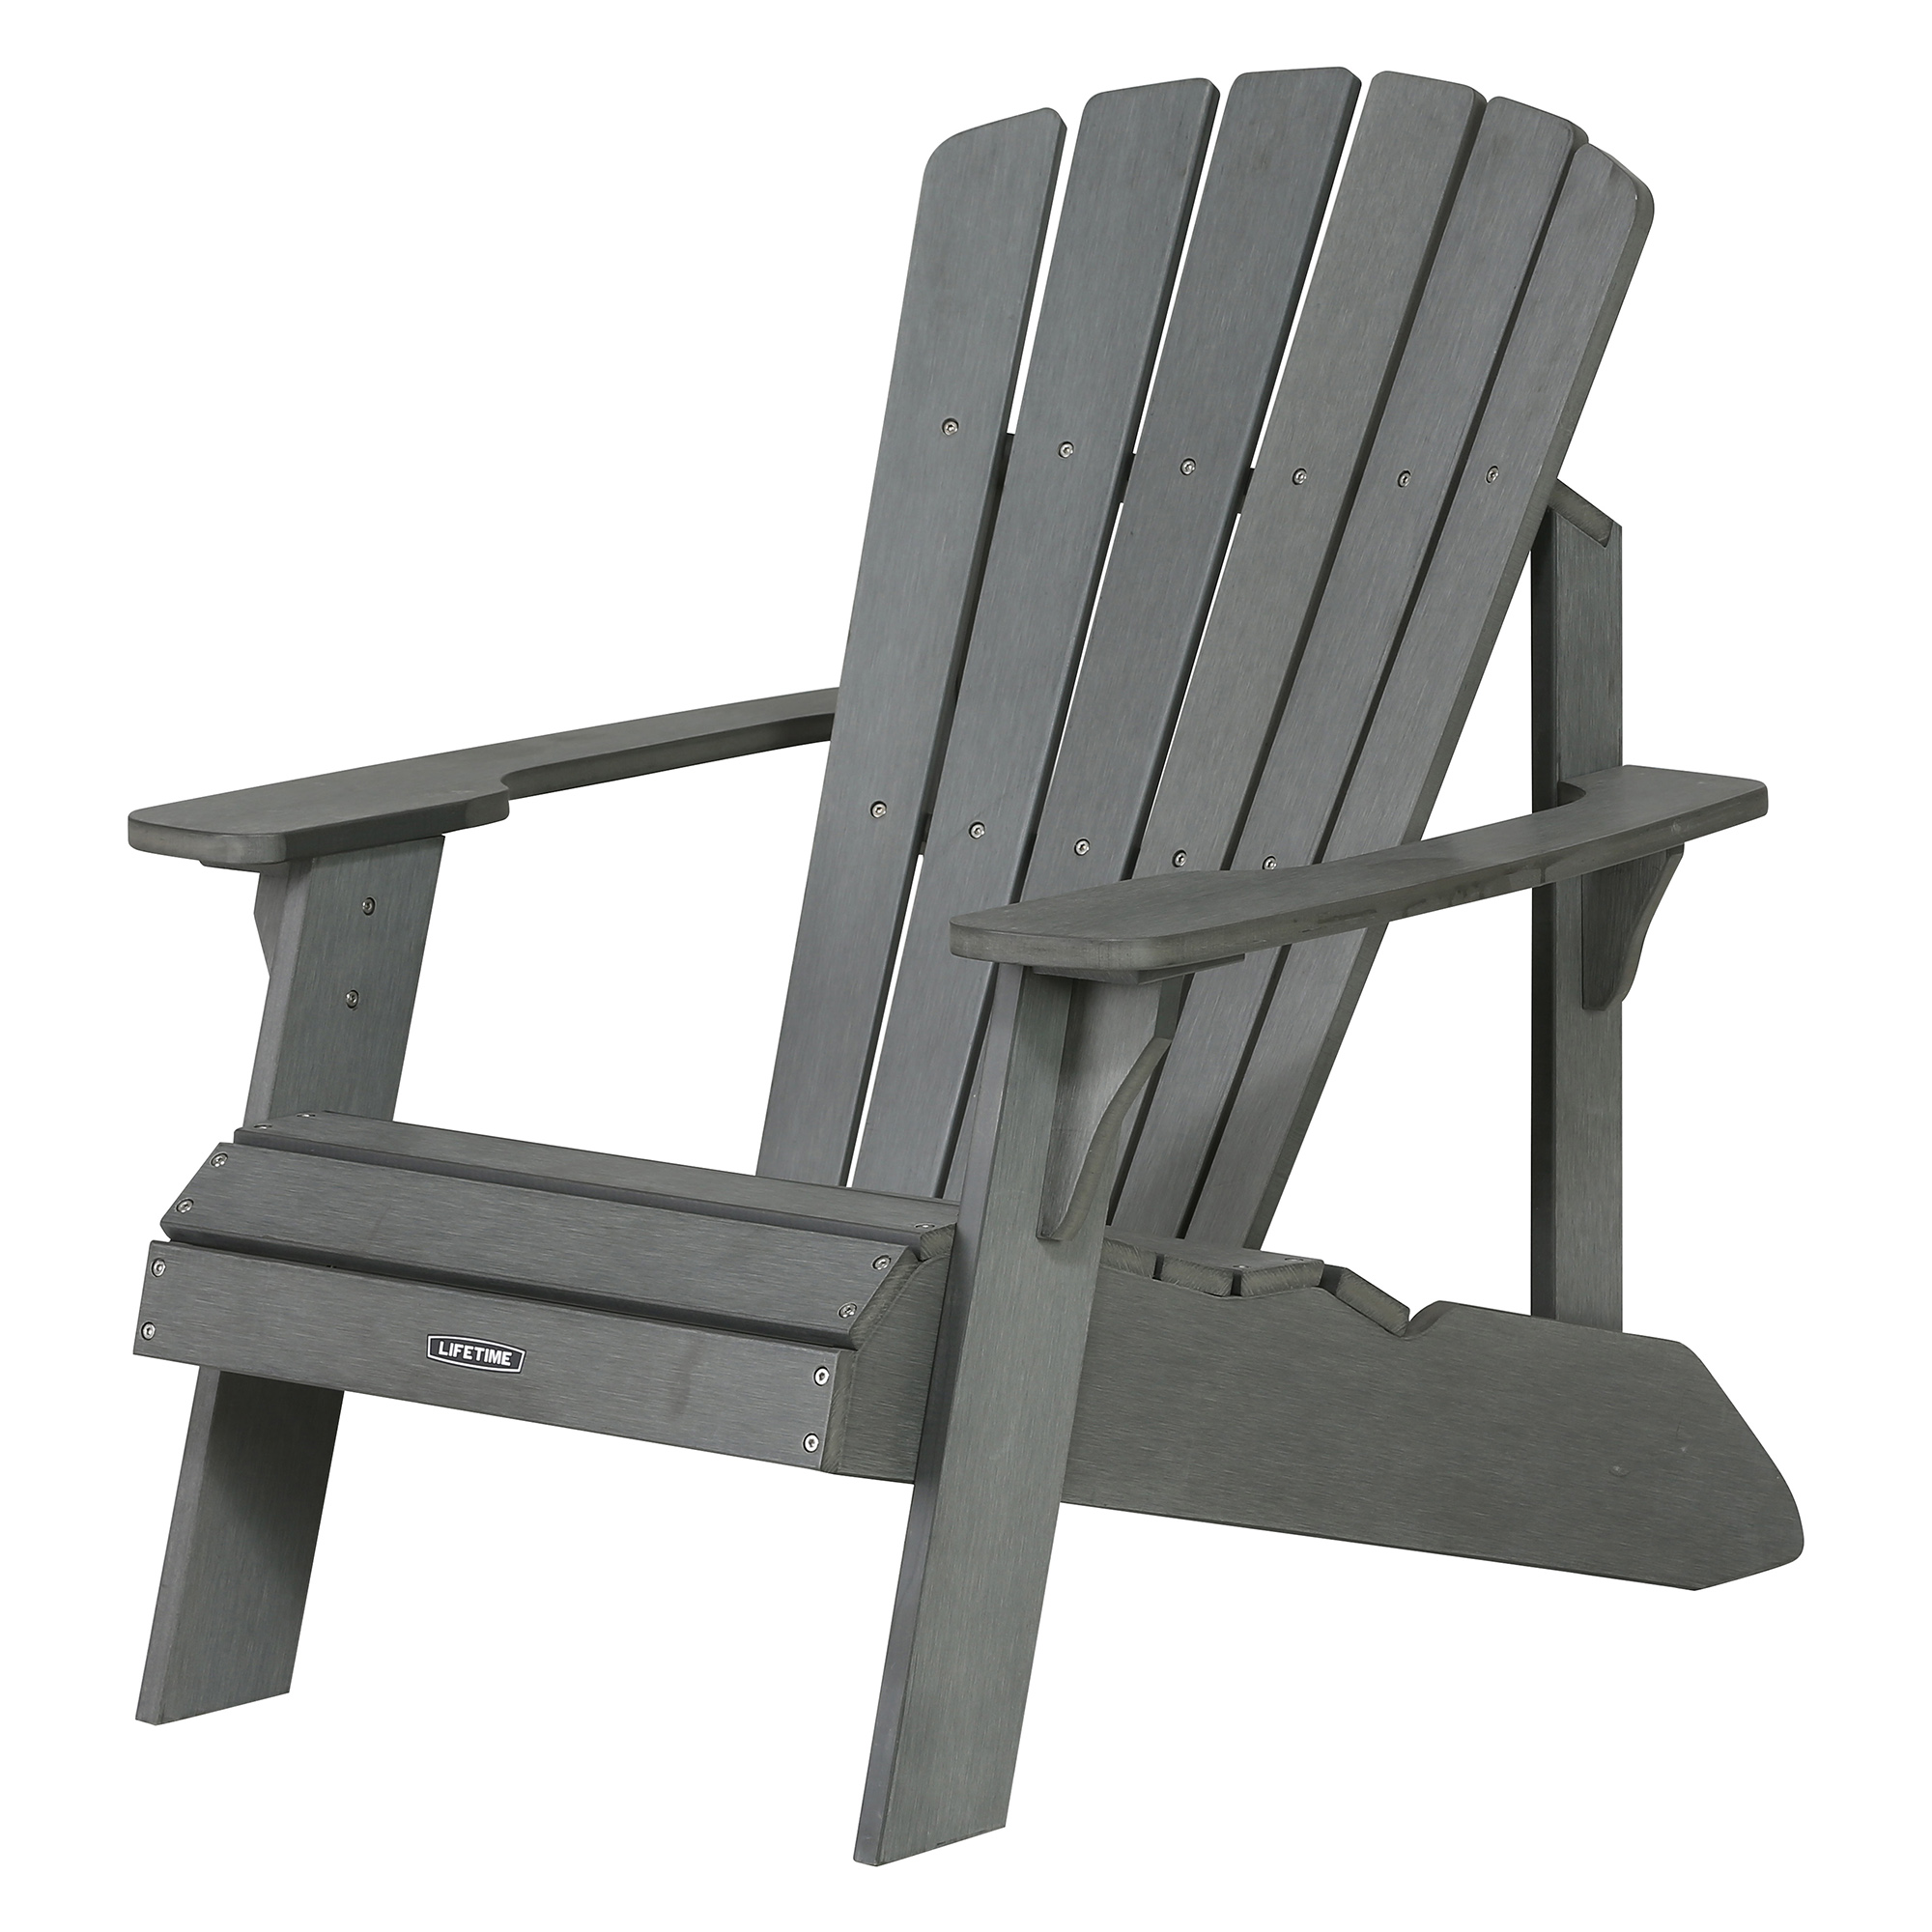 Lifetime Adirondack Chair, Gray, 60204 by Lifetime Products